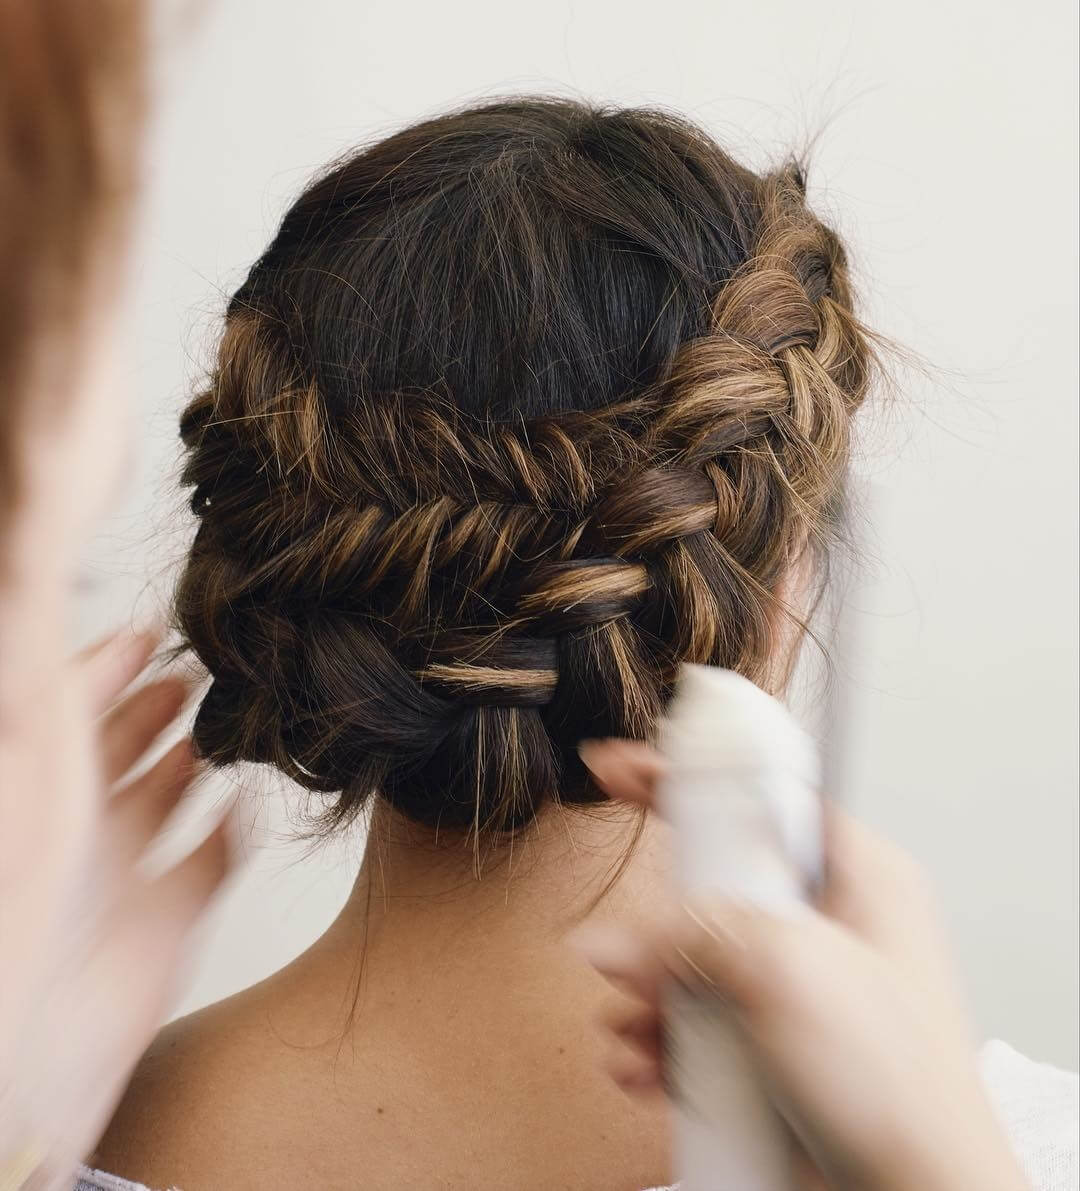 Braided Updo for Bridesmaid